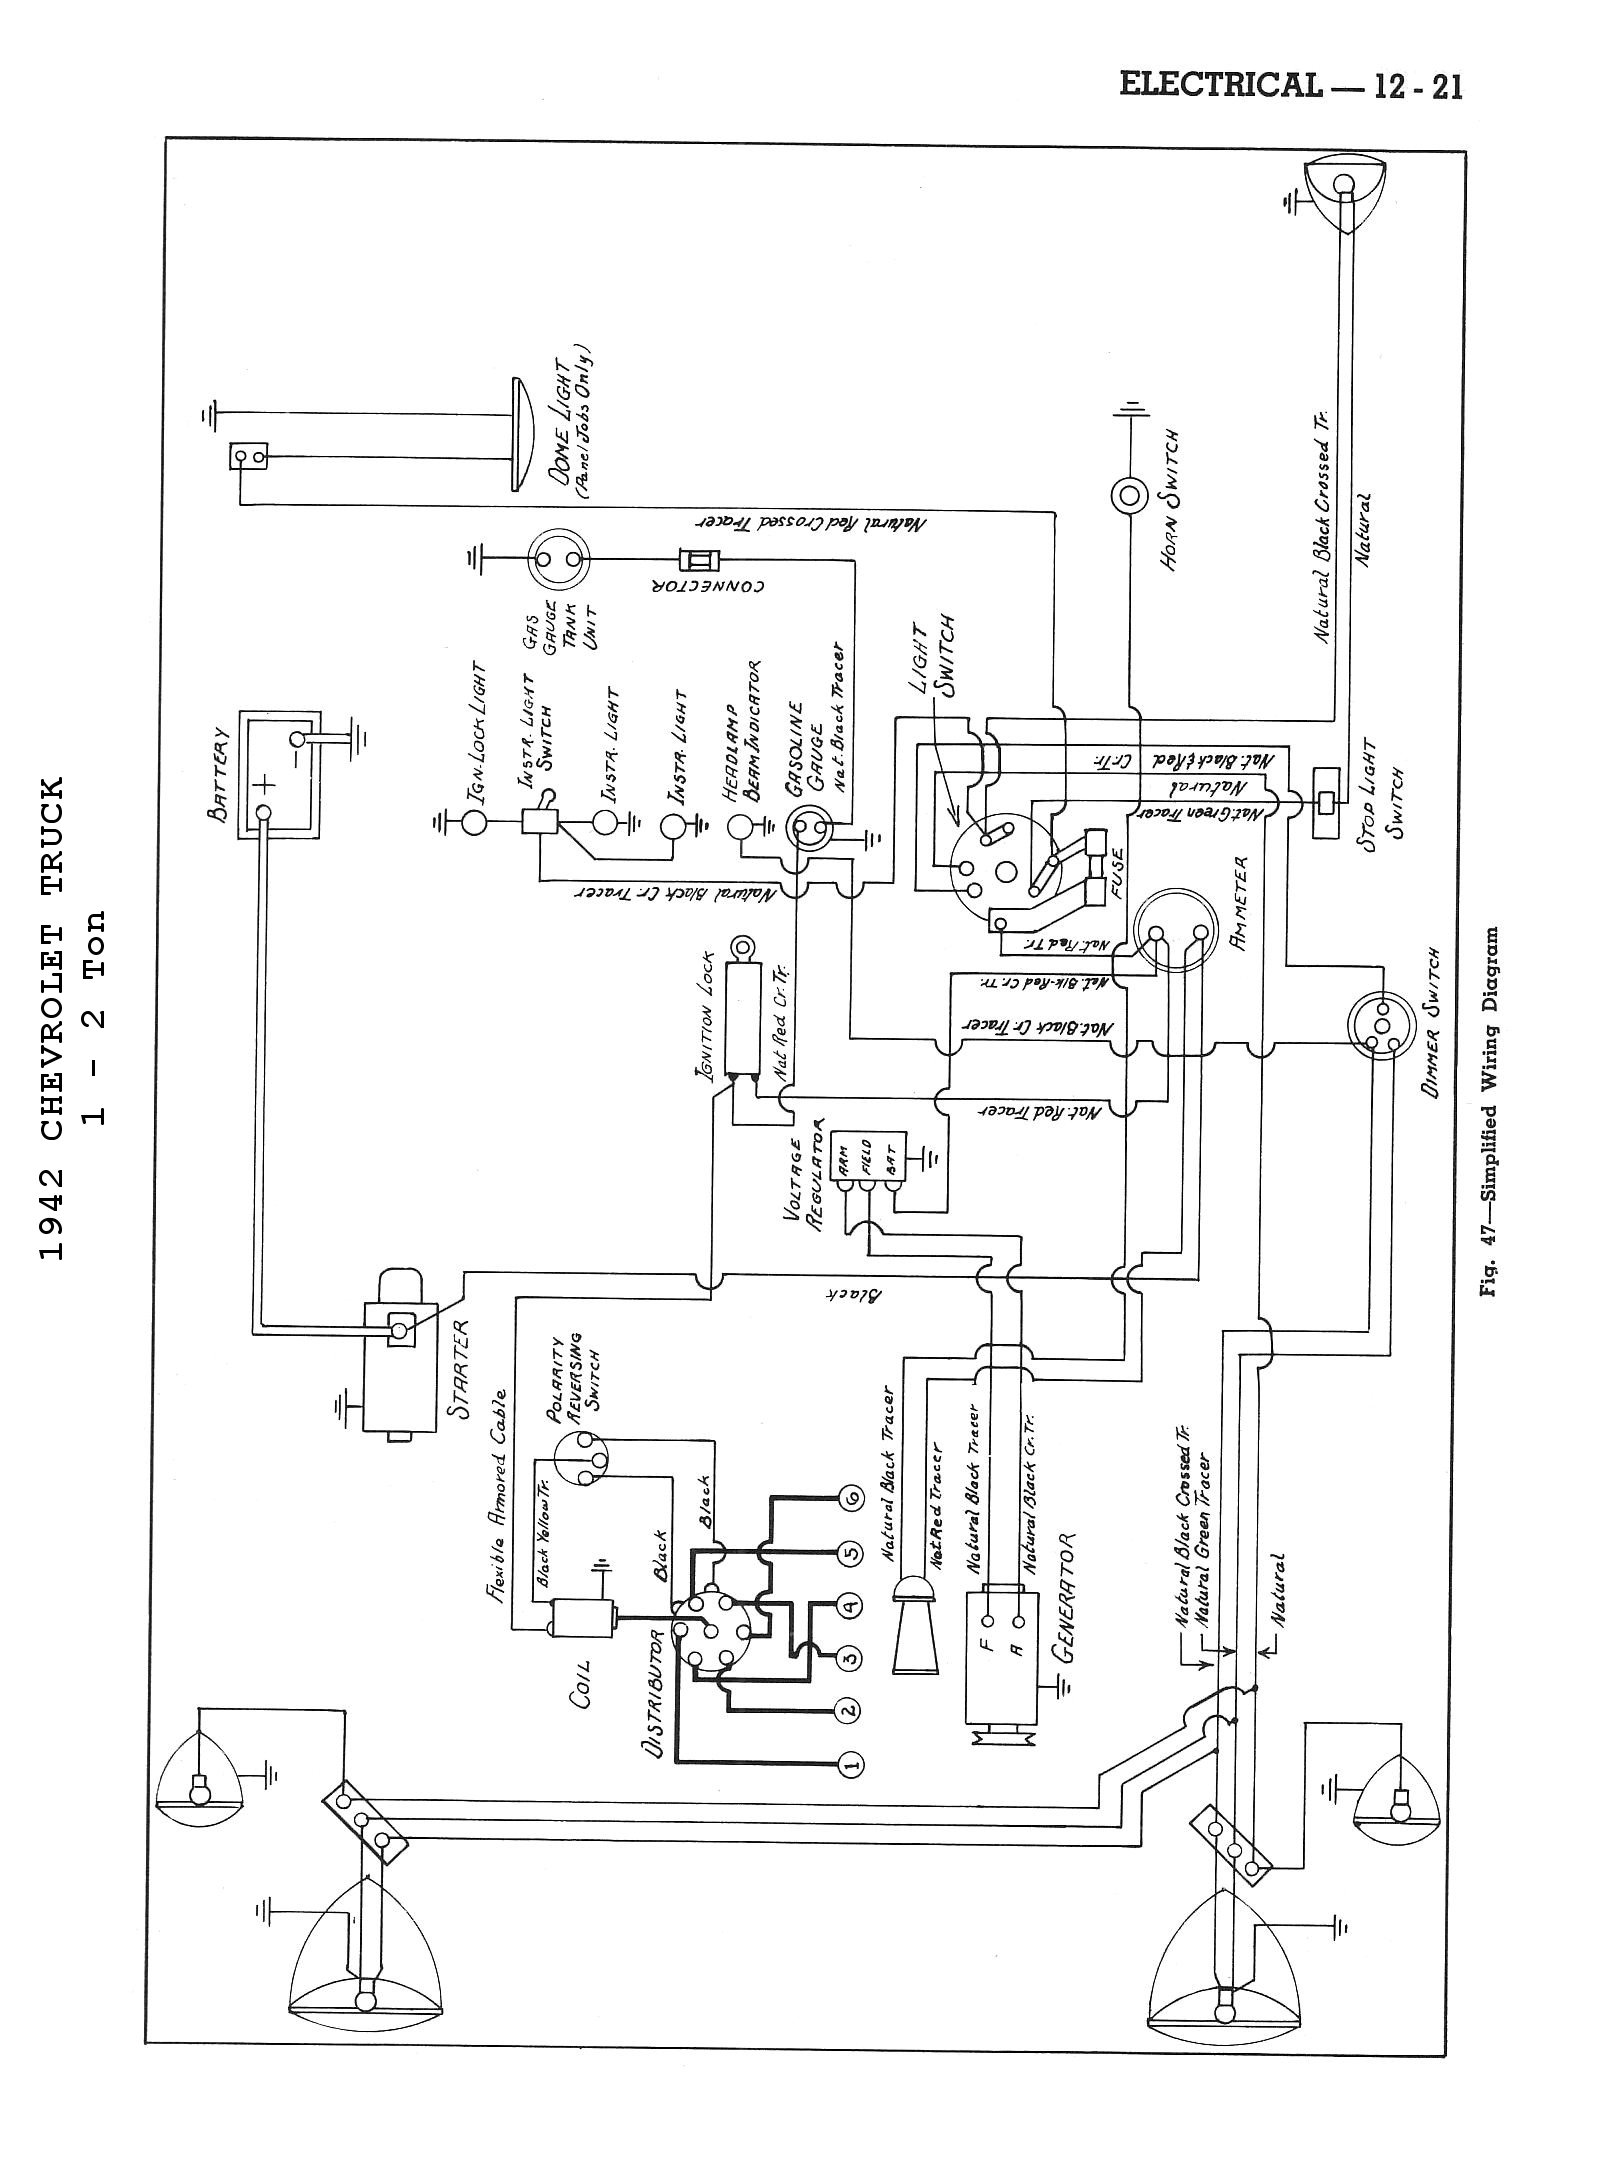 Wiring Diagram For 1935 Desoto on 1948 ford coupe engine